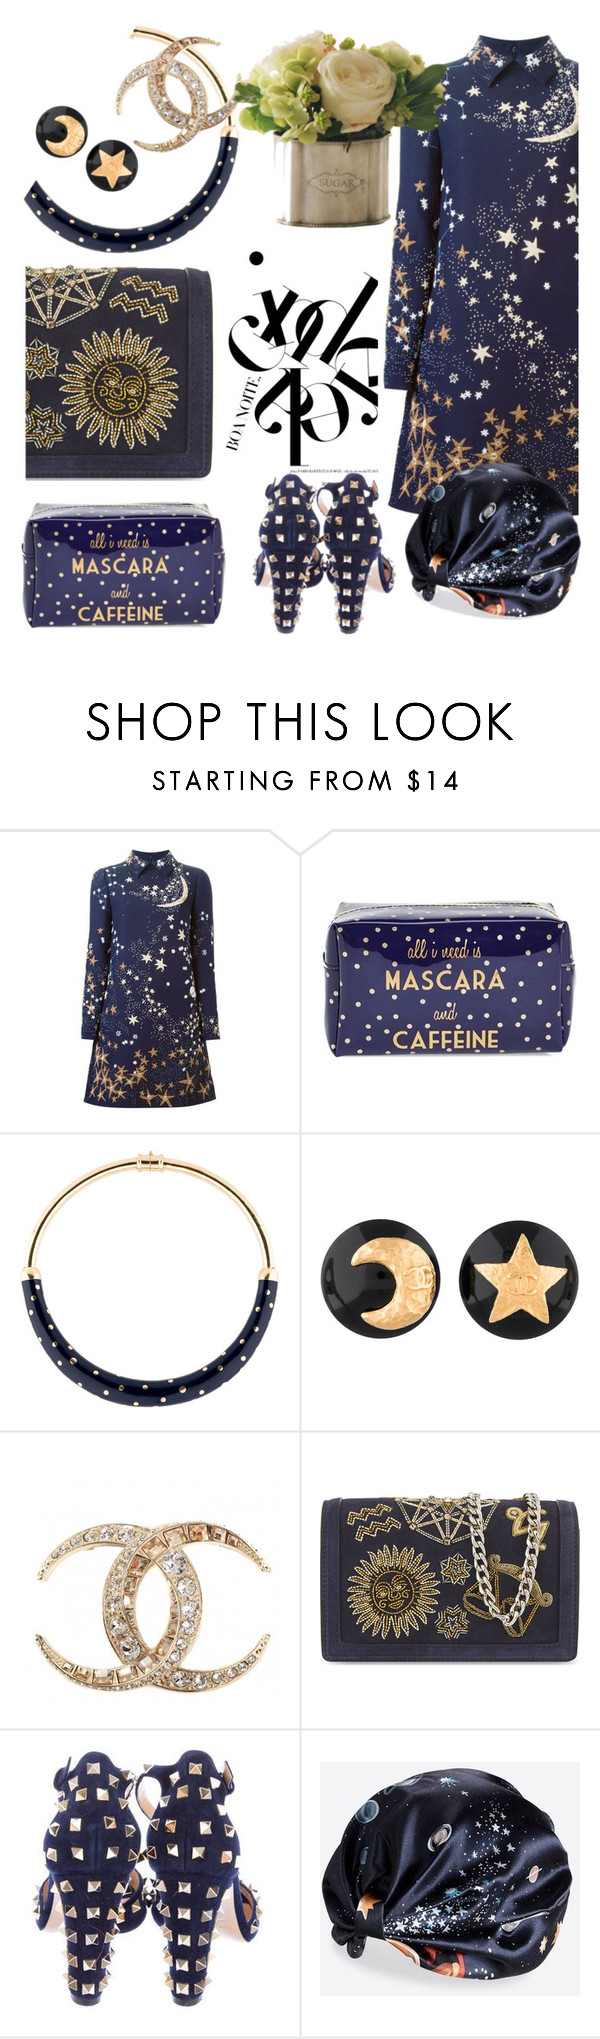 """At the stroke of midnight"" by pensivepeacock ❤ liked on Polyvore featuring Valentino, Tri-coastal Design, Aurélie Bidermann, Winward and Emilio Pucci"